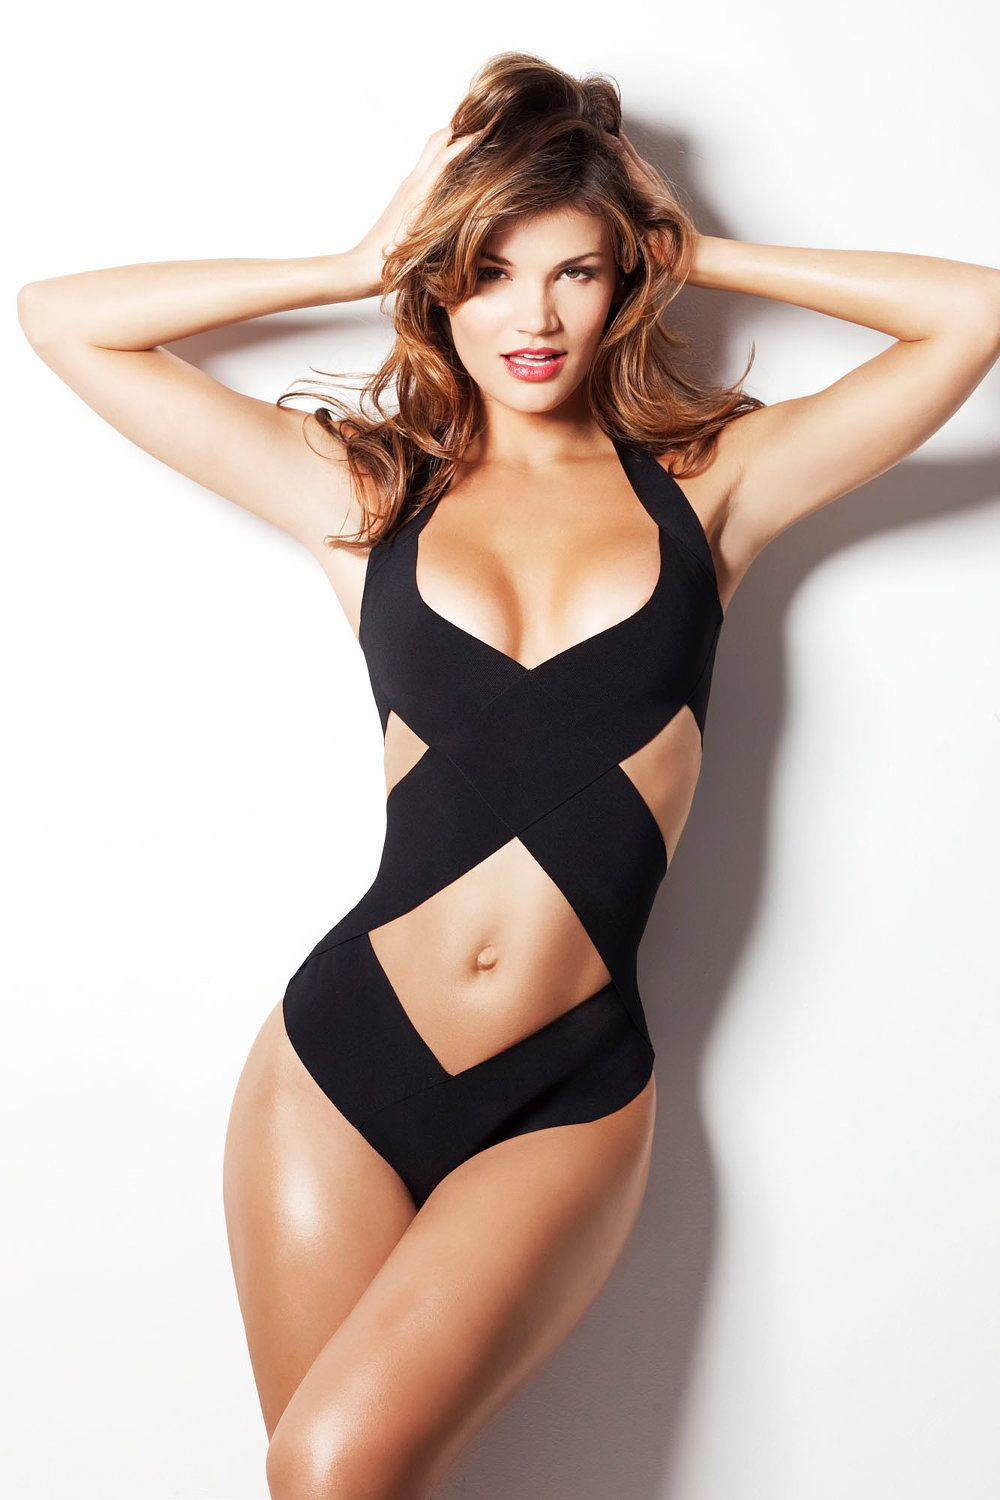 59730284a3 Bandage swimsuit  bathing suit as seen in GQ